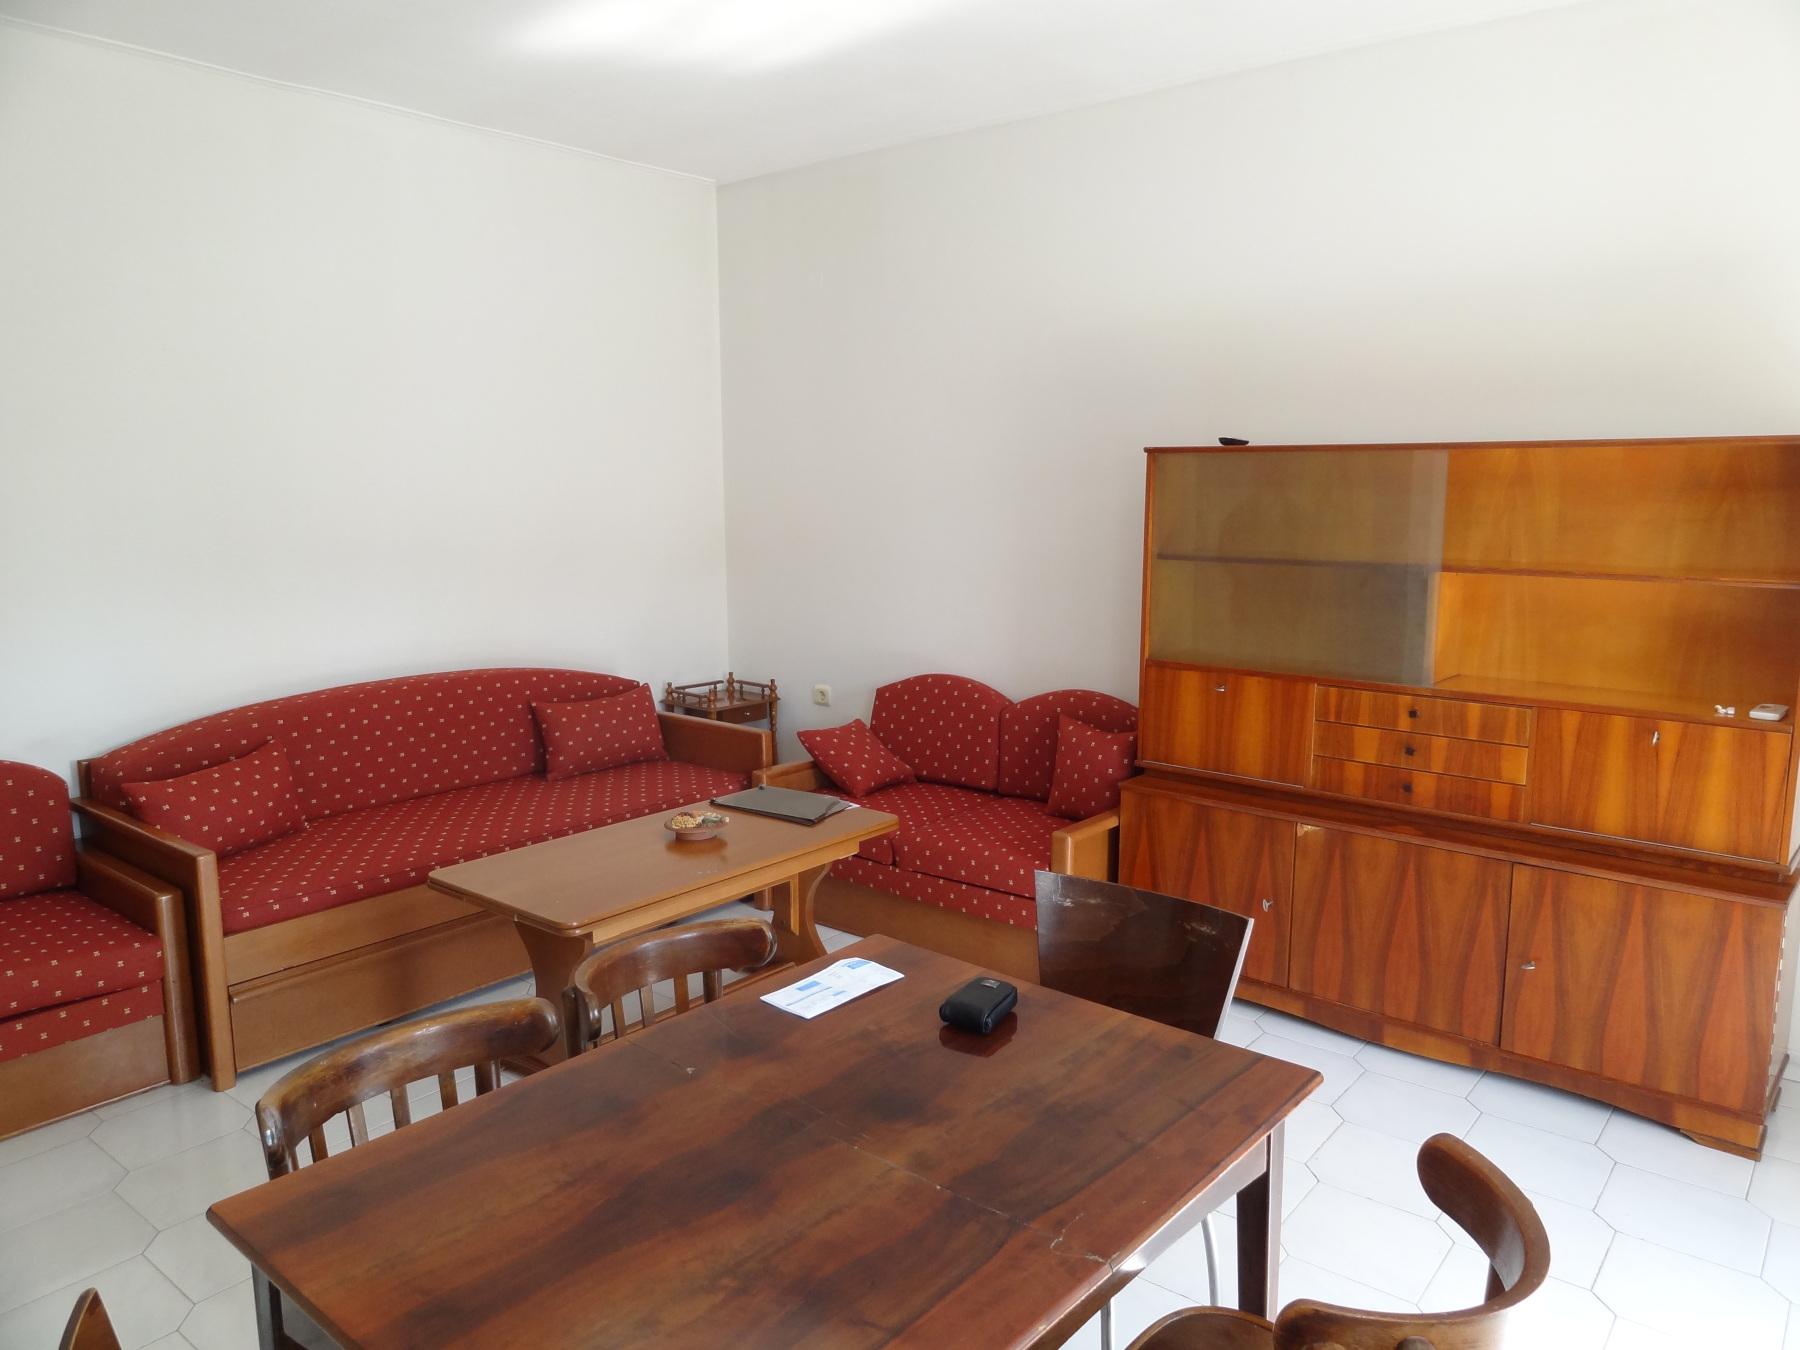 For rent furnished 1 bedroom apartment of 45 sq.m. 1st floor near the bus station in Ioannina